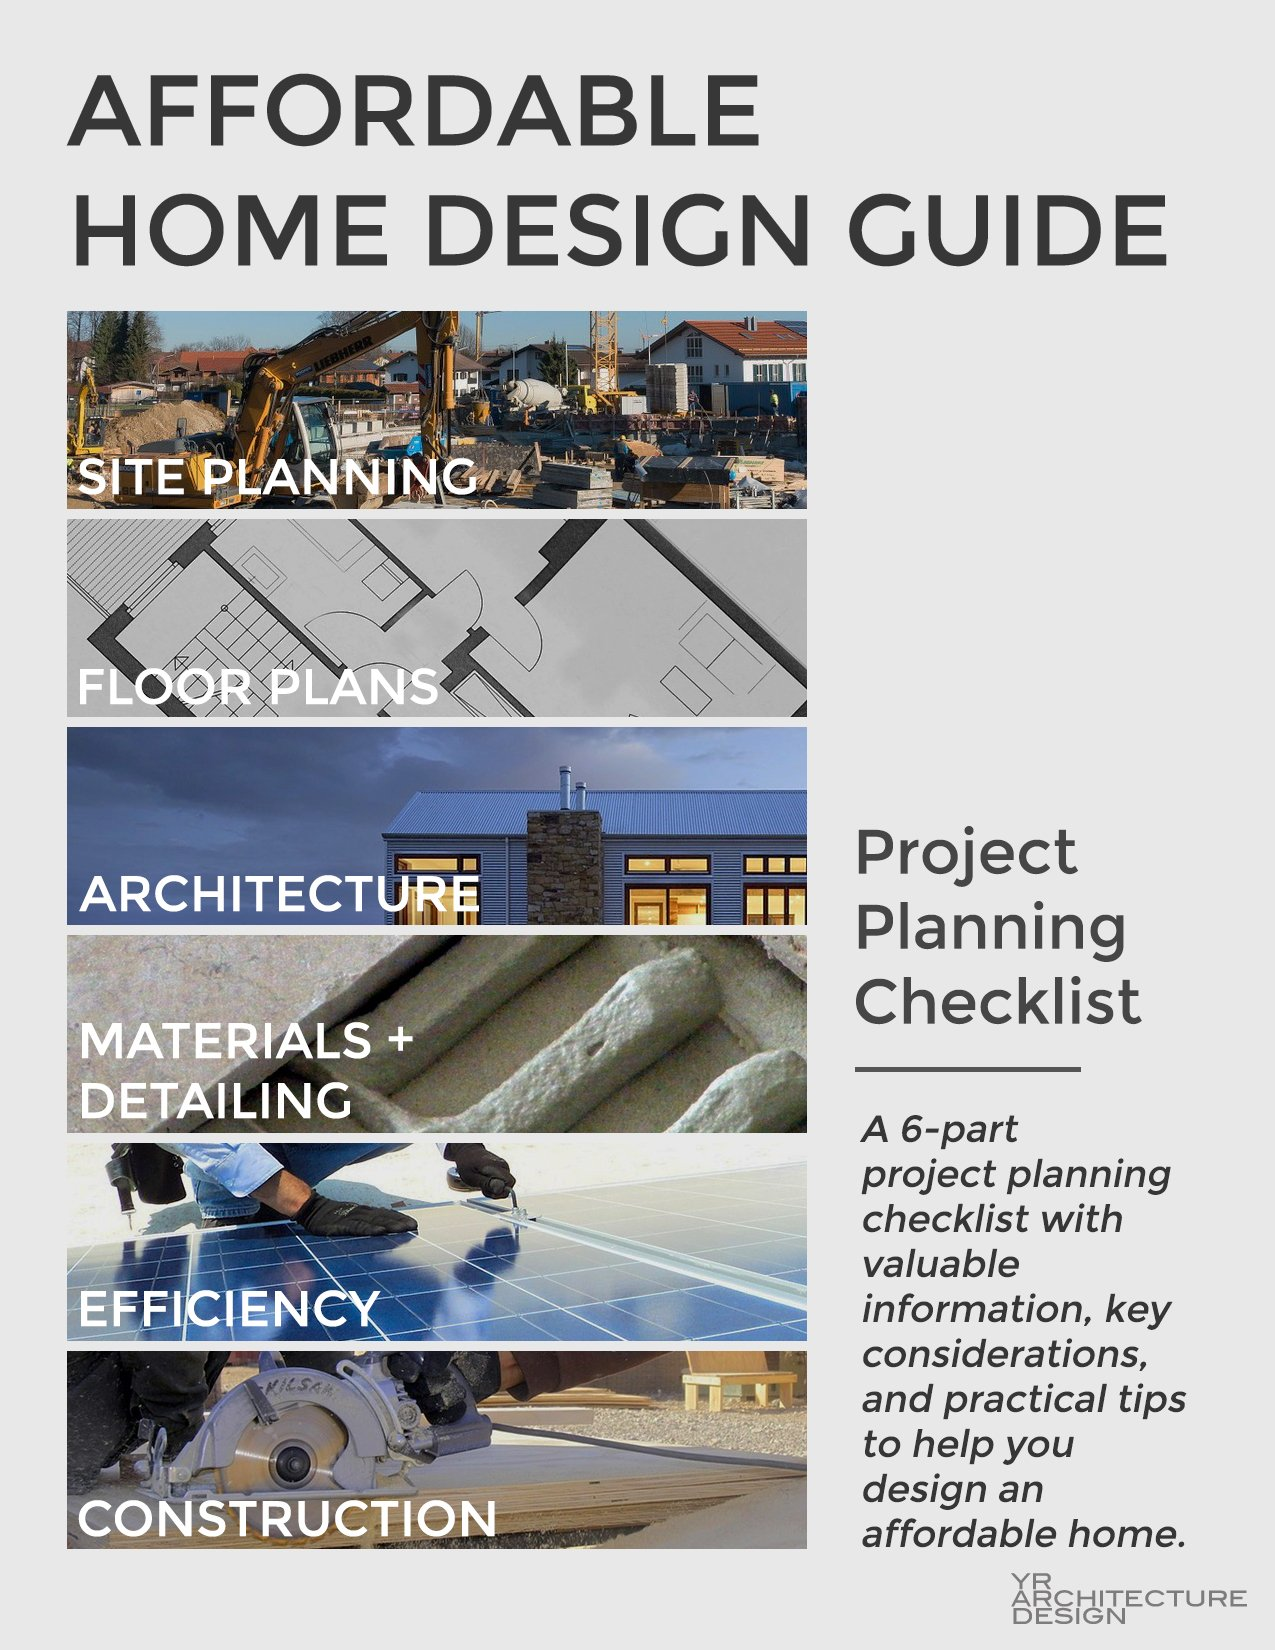 Affordable Home Design: Efficient Floor Plans on affordable to build home plans, inexpensive two-story house plans, simple affordable house plans, 2014 best house plans, affordable home designs, affordable house plans to build, affordable home builders, affordable house plans a frame, affordable modern home plans, affordable home building, affordable open floor plans, affordable modern prefab homes, affordable 6 bedroom house plans, affordable housing design, affordable 4 bedroom house plans, affordable log homes, affordable home remodeling, affordable house plans 2000 sq, affordable home furniture, affordable duplex plans,